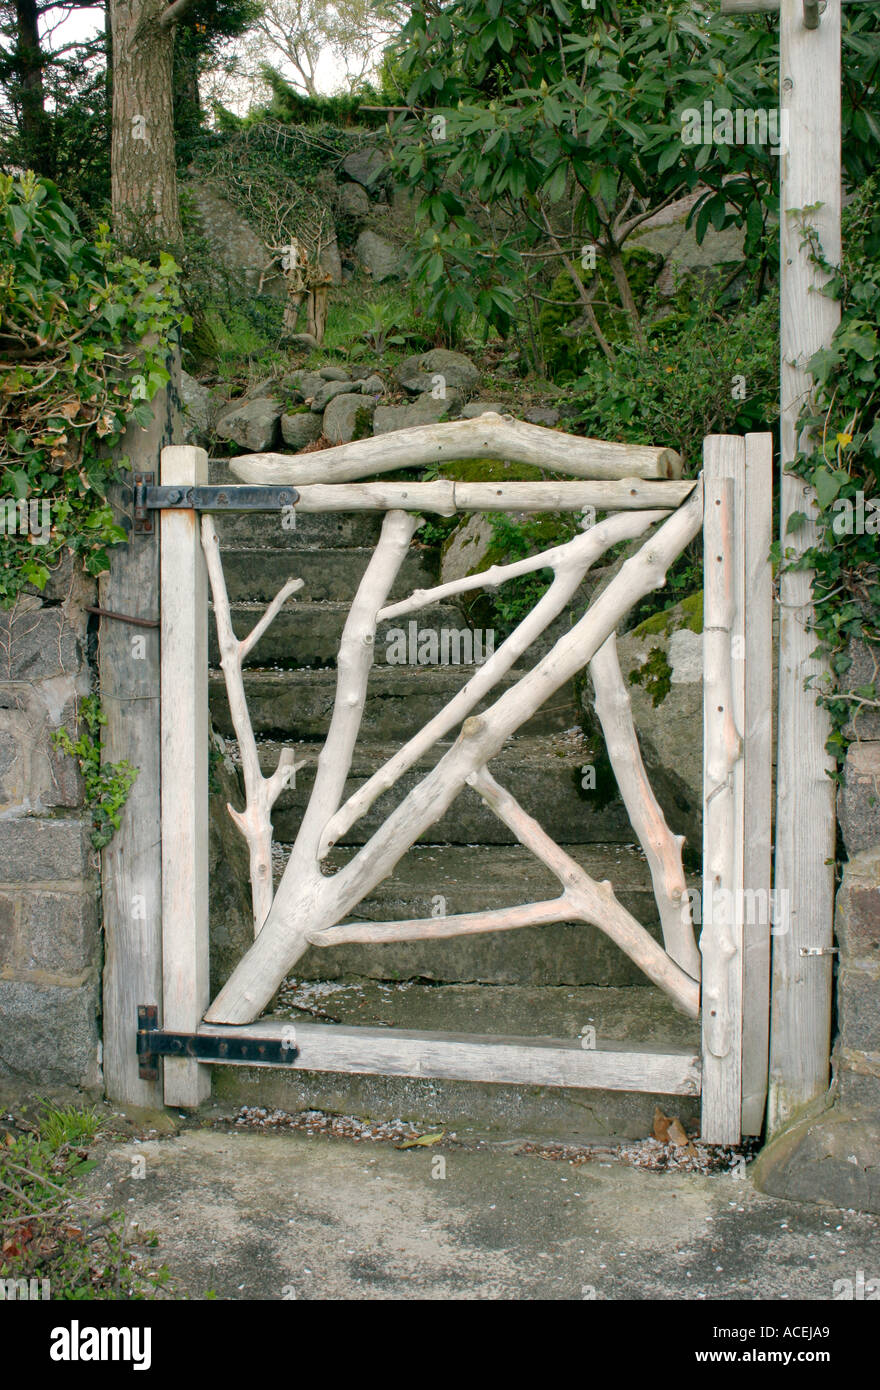 Garden Gate Made From Tree Branches Stock Photo 4287144